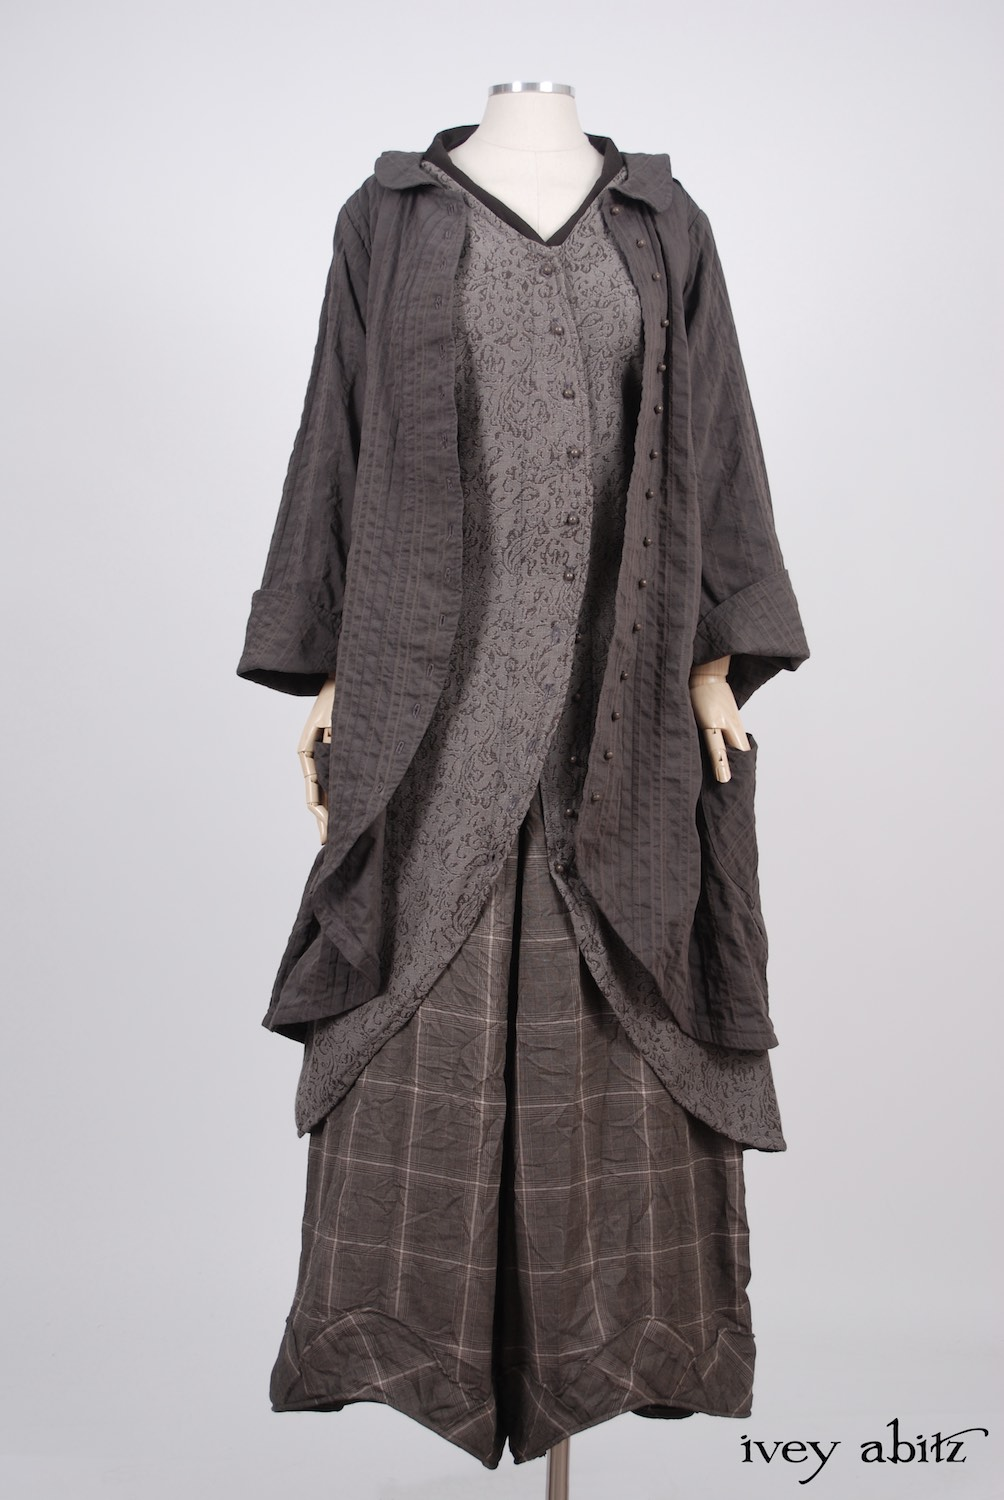 Ivey Abitz - Arthur Hill Jacket in Feather Textured Striped Cotton  - Arthur Hill Frock in Feather Vine Weave  - Clotaire Sash in Feather Brown Crepe Voile  - Grasmere Trousers in Feather Brown Crushed Plaid Weave, Low Water Length